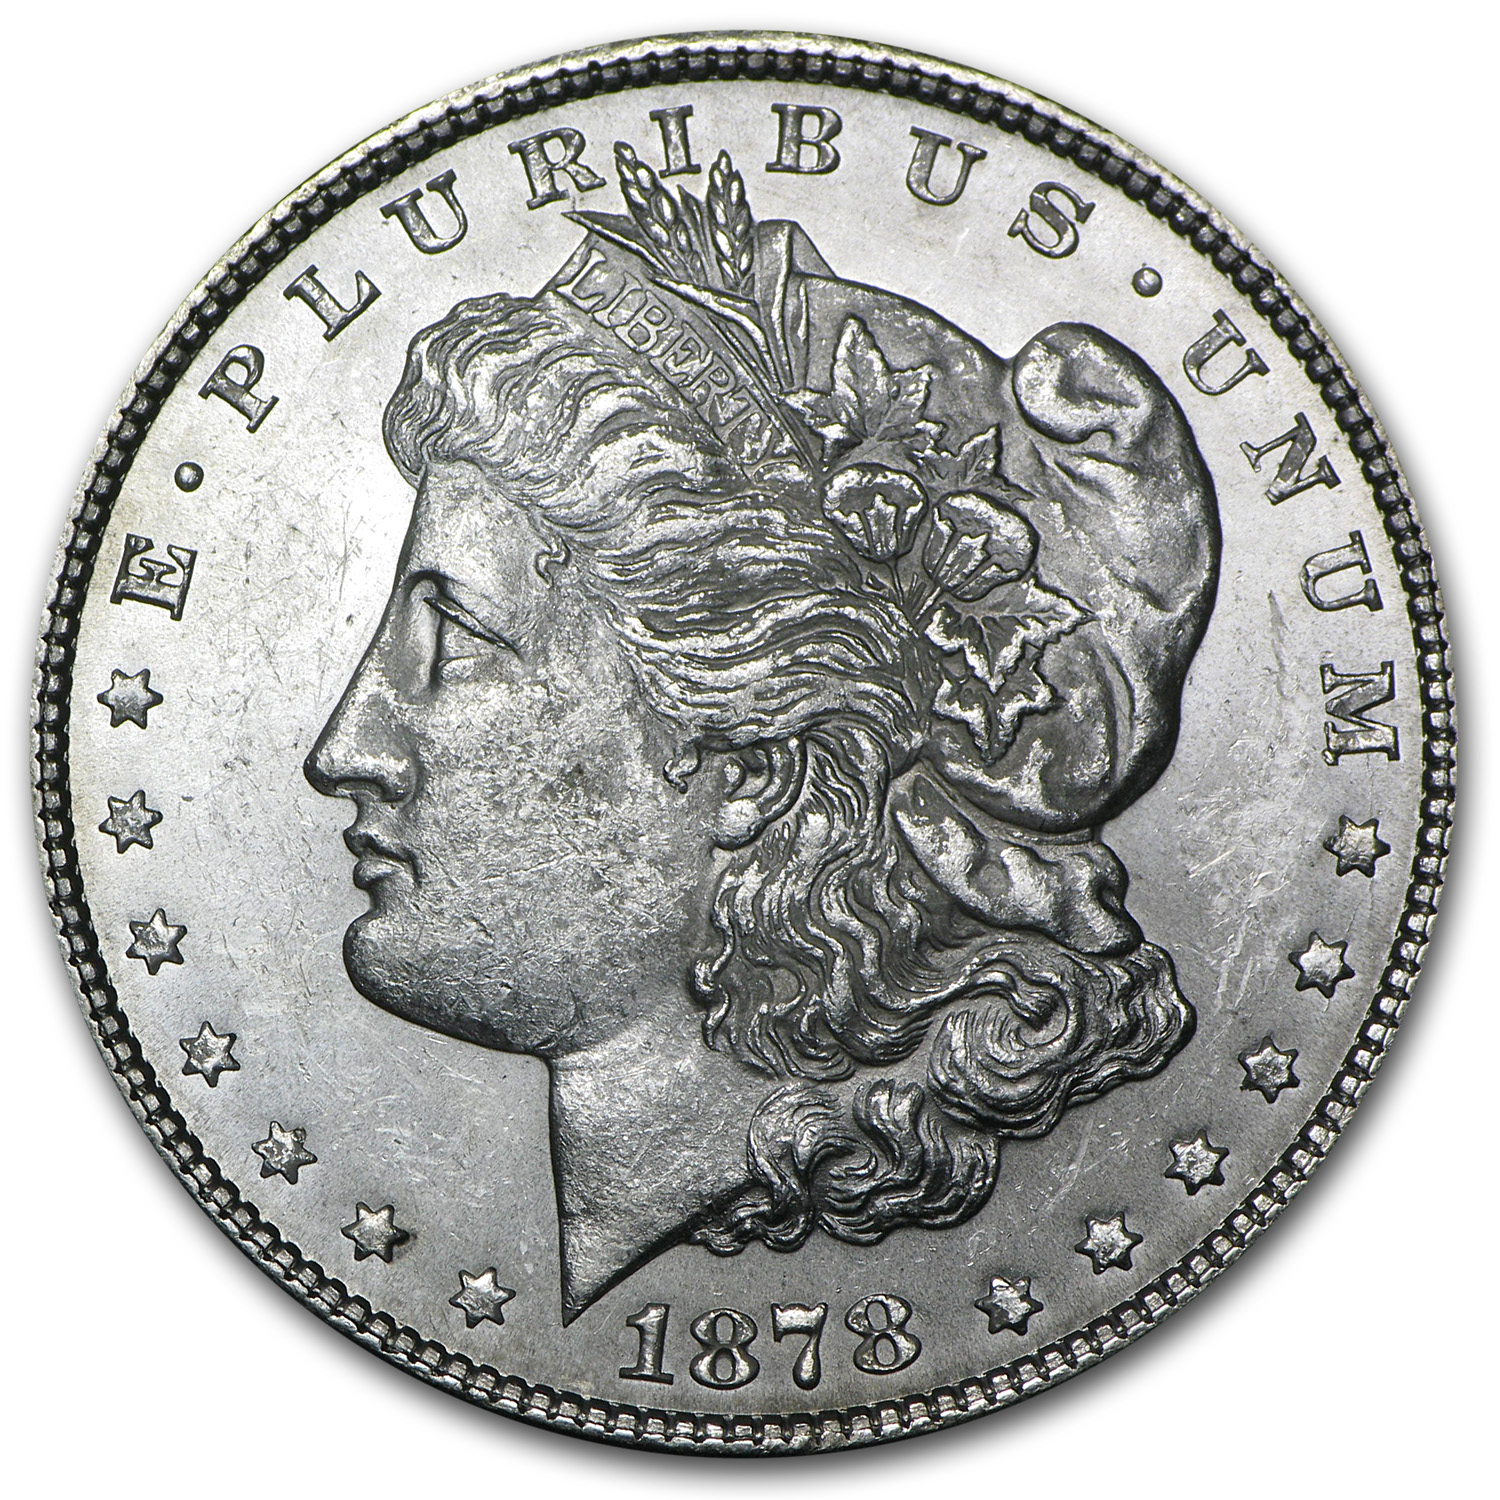 1878 Morgan Dollar - 7 Tailfeathers Reverse of 1879 - BU